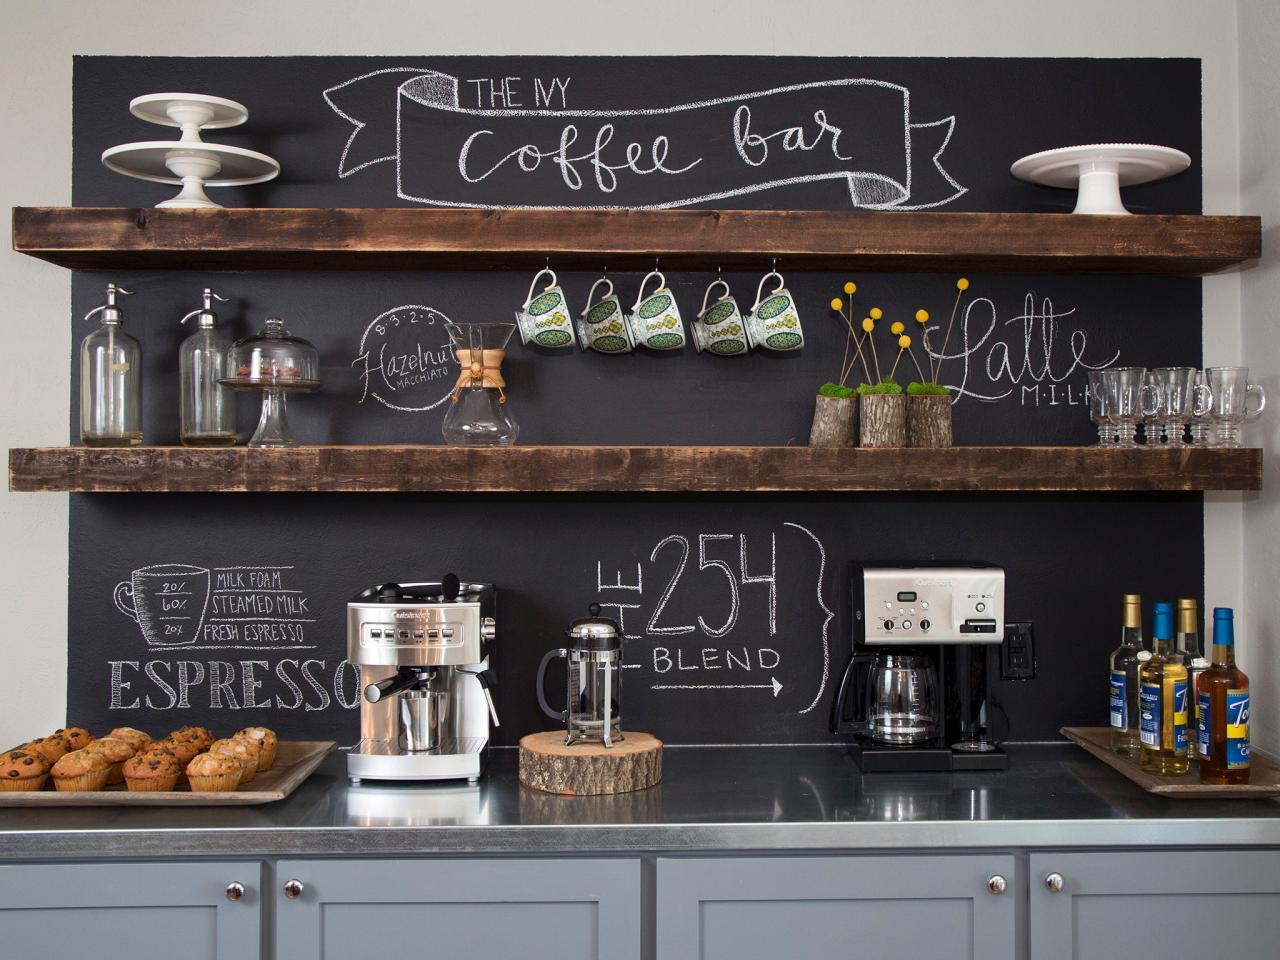 make your bookshelves shelfie worthy with inspiration from fixer floating shelves above bar home coffee chalkboard wall ture frame storage ideas white wood shelf hooks stainless